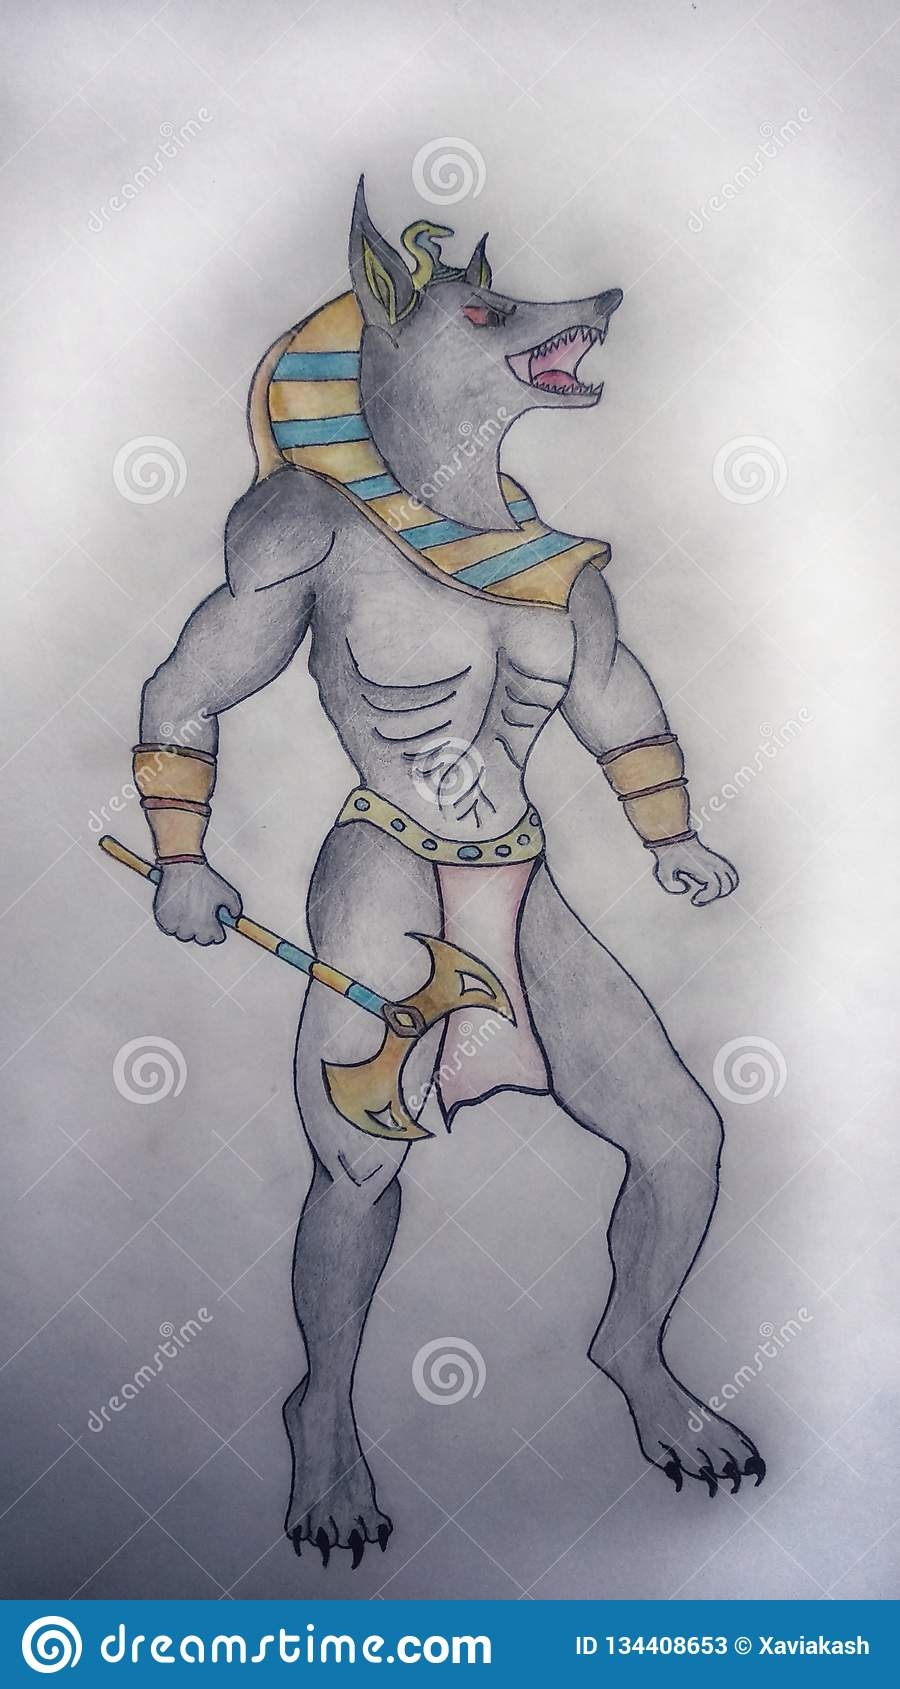 Anubis hand drawing